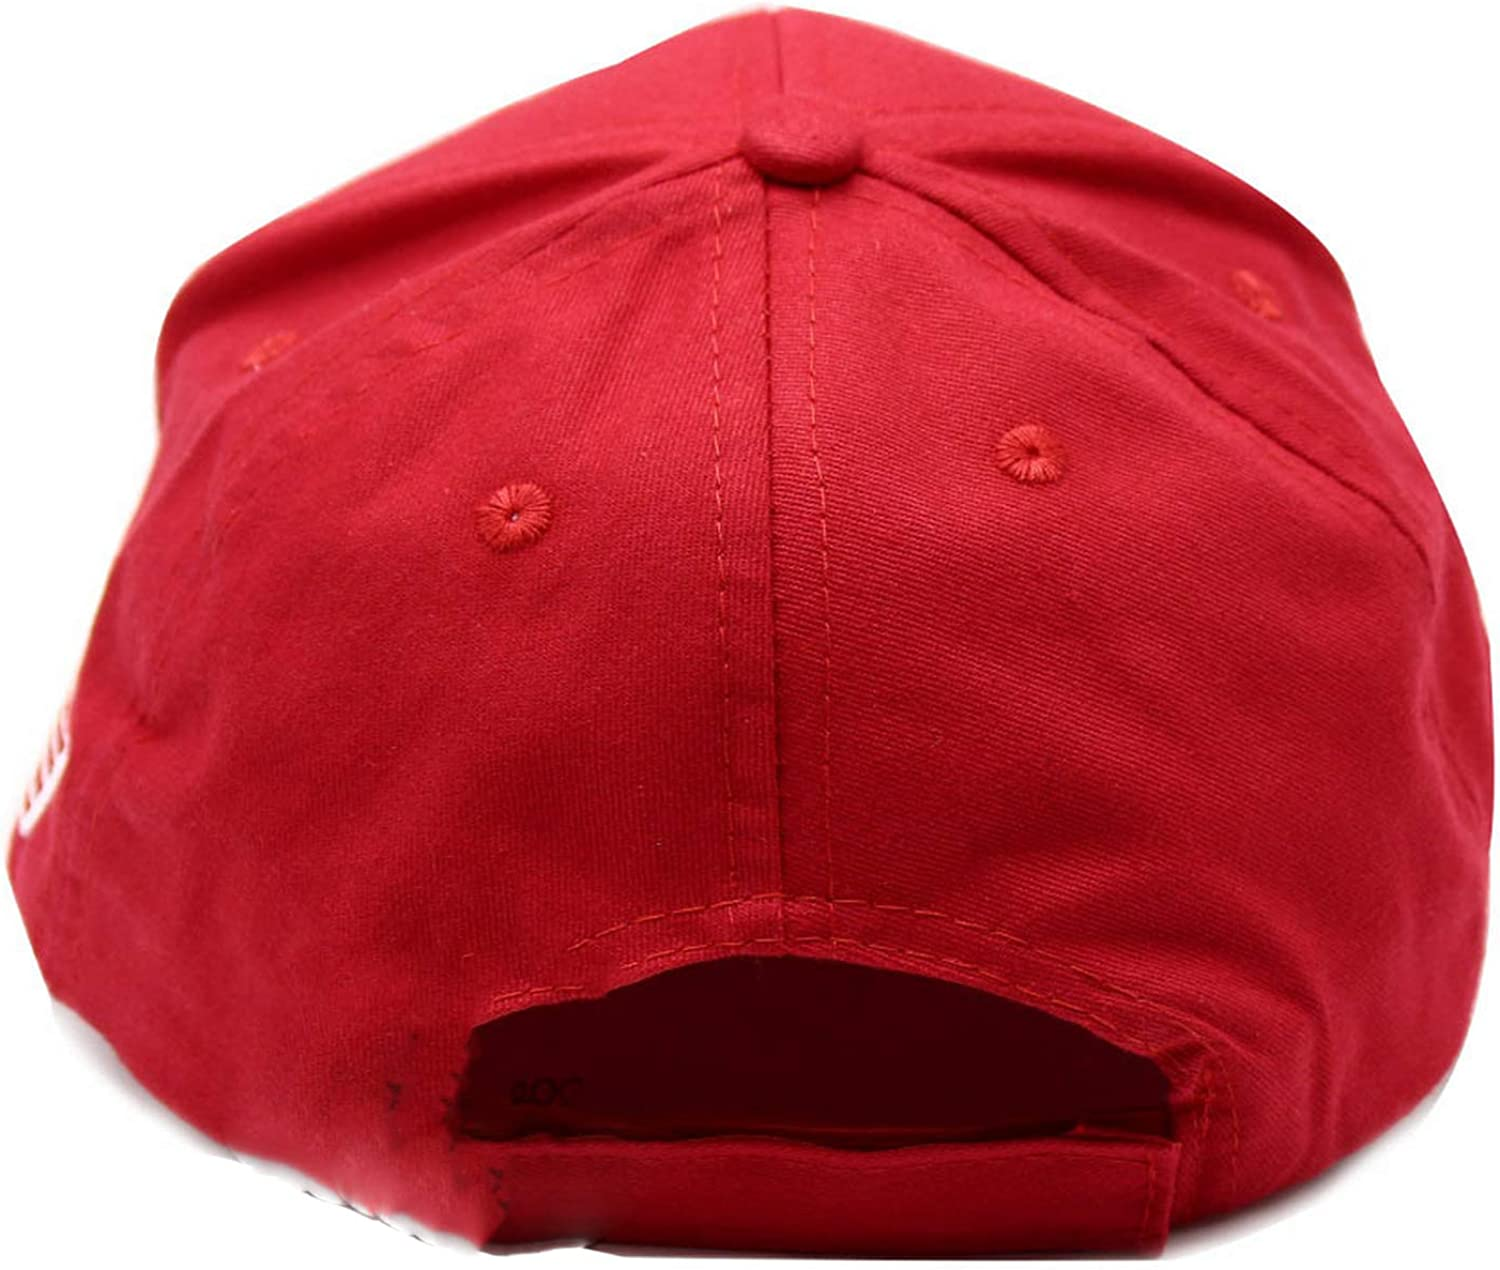 Donald Trump Red Hat Re-Election Keep America Great Embroidery New Cap Cotton Baseball Hat Cap